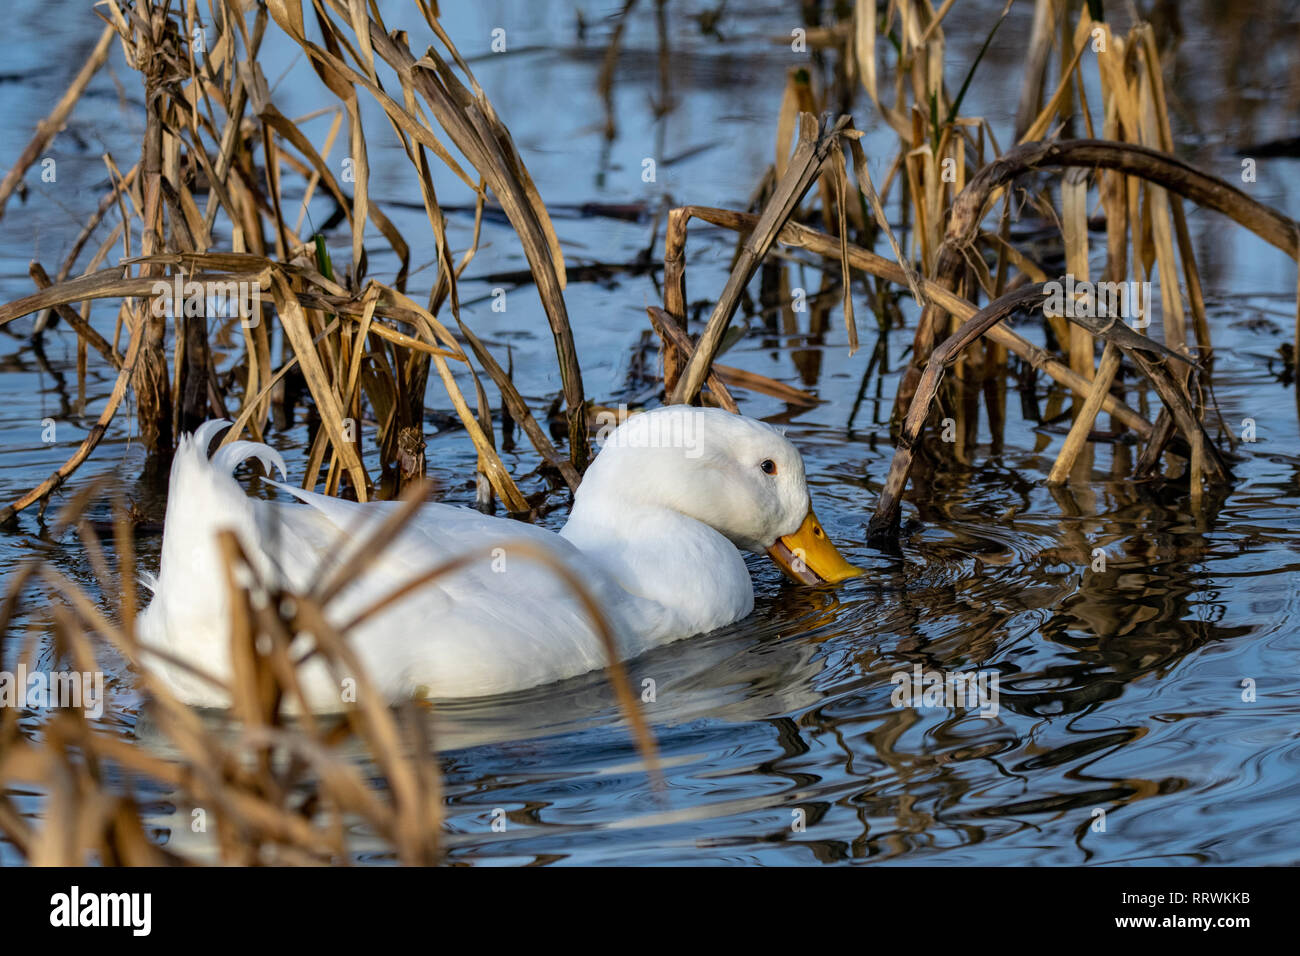 Male drake heavy white Pekin Duck (also known as Aylesbury or Long Island Duck) feeding amongst water reeds - Stock Image